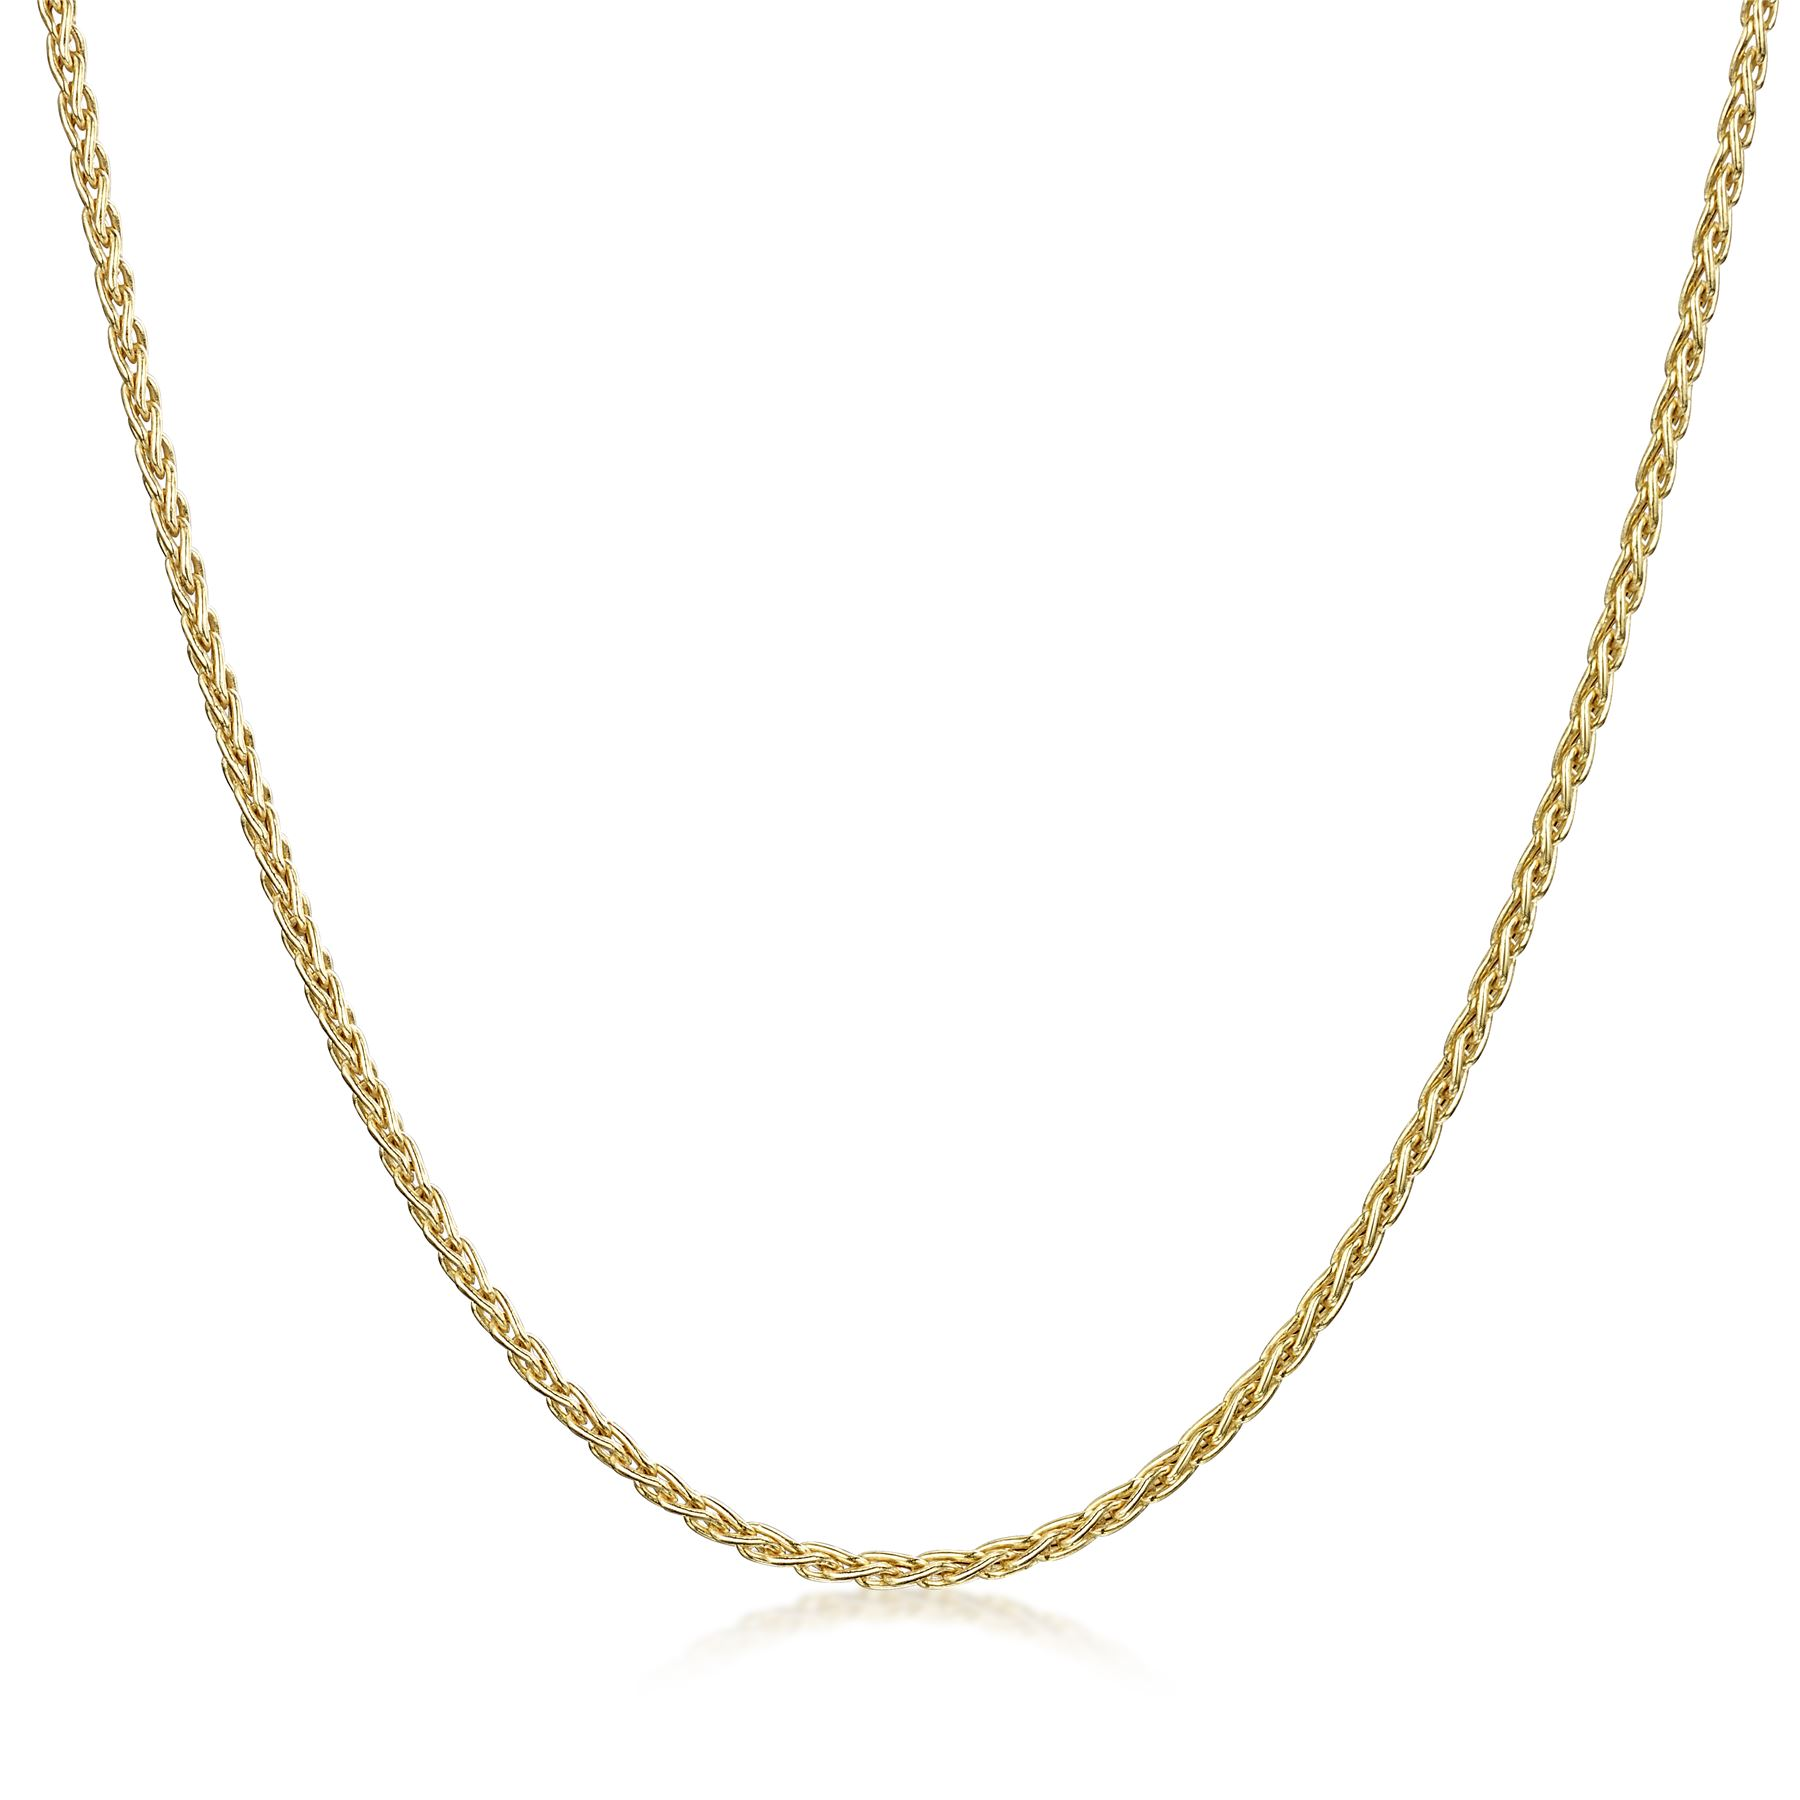 Amberta-Genuine-Solid-10k-Gold-Chain-Adjustable-Necklace-for-Women-and-Men thumbnail 15